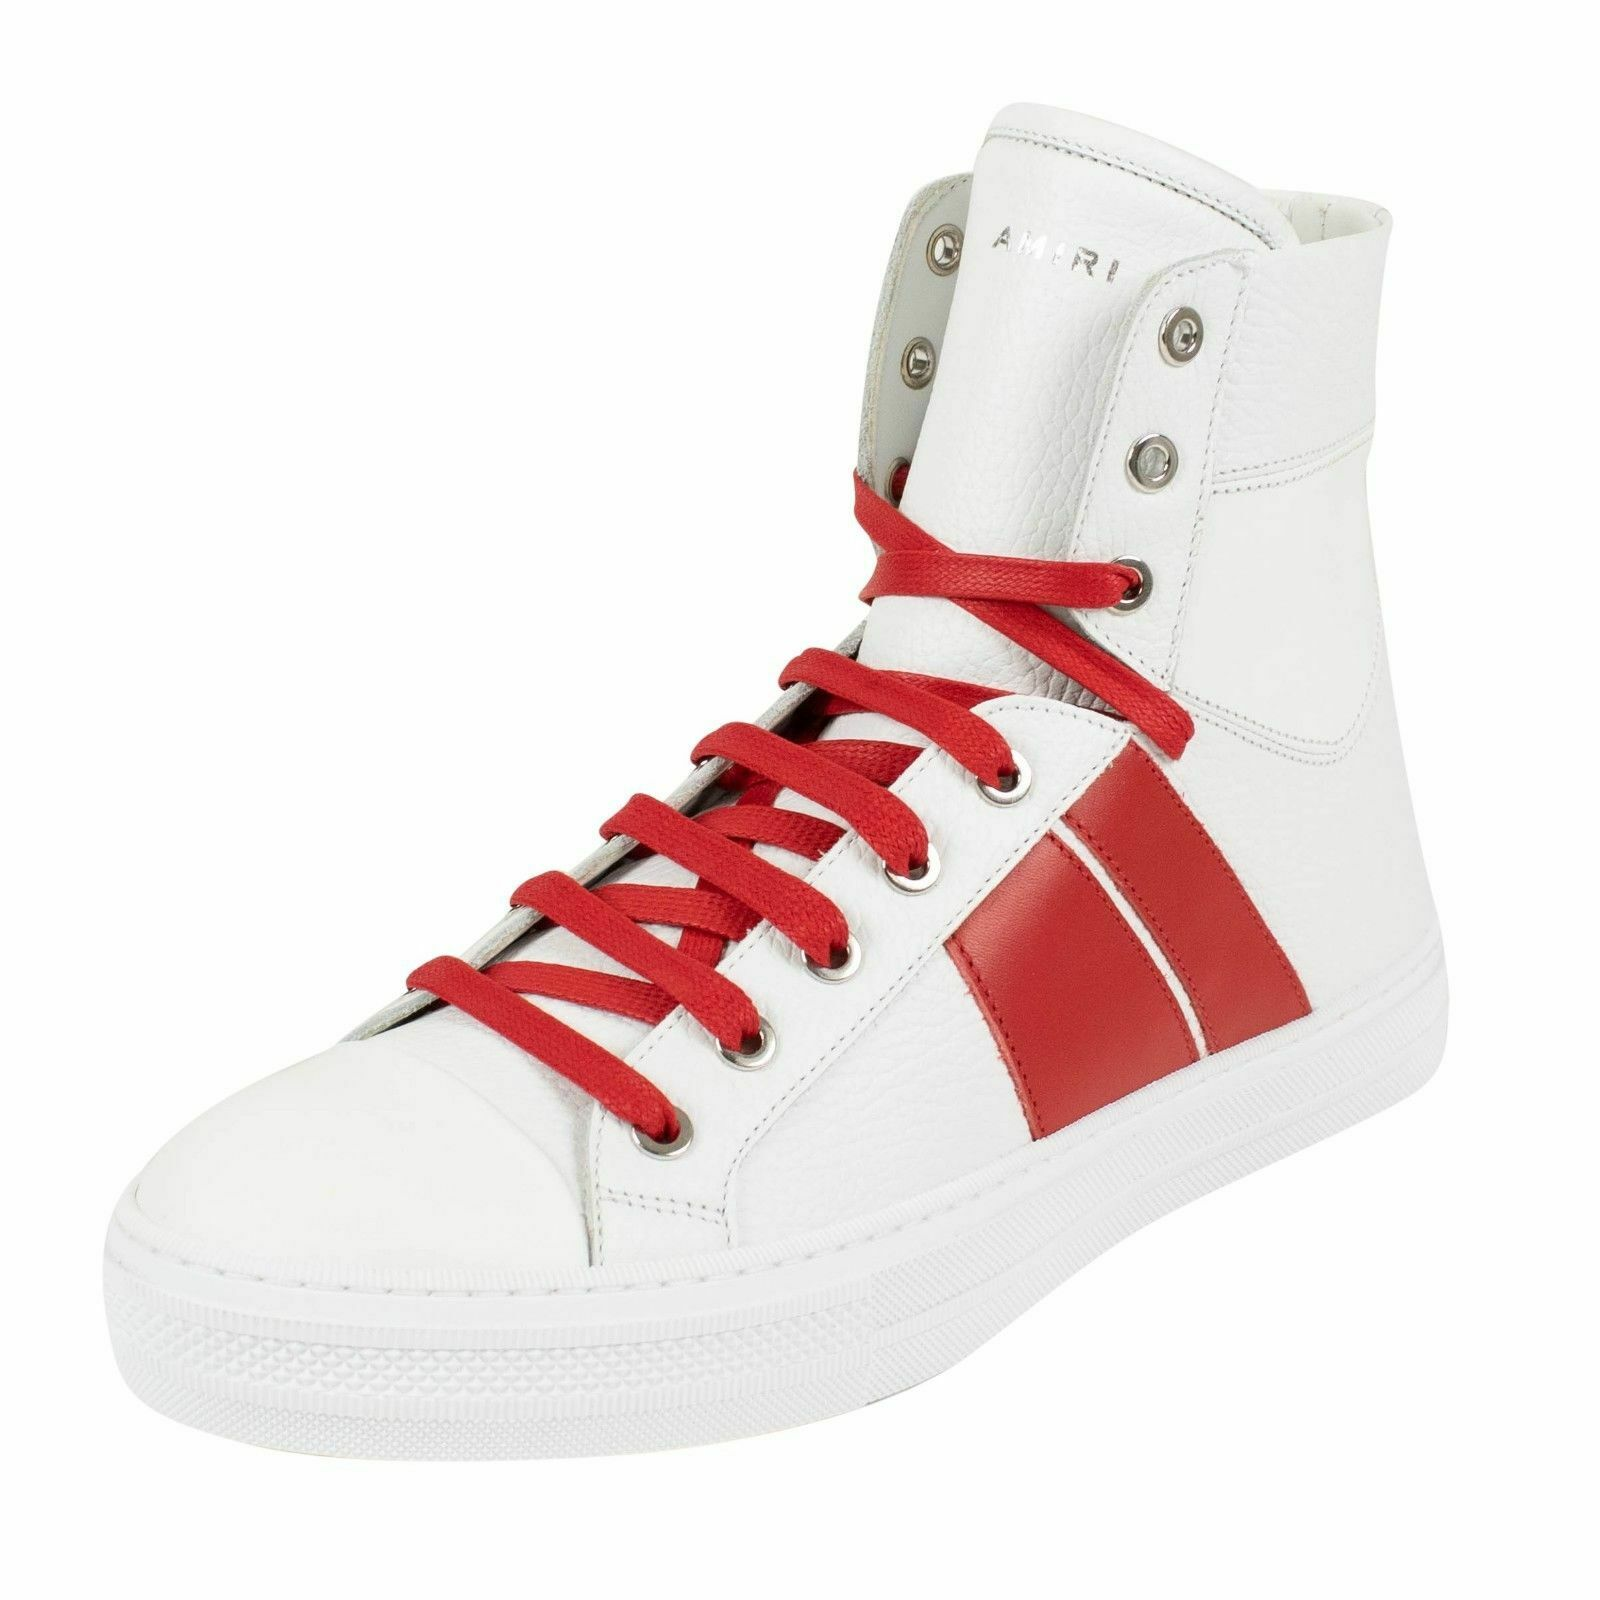 NIB AMIRI 'Sunset' White Red Leather Sneakers shoes Size 8 US 41 EU